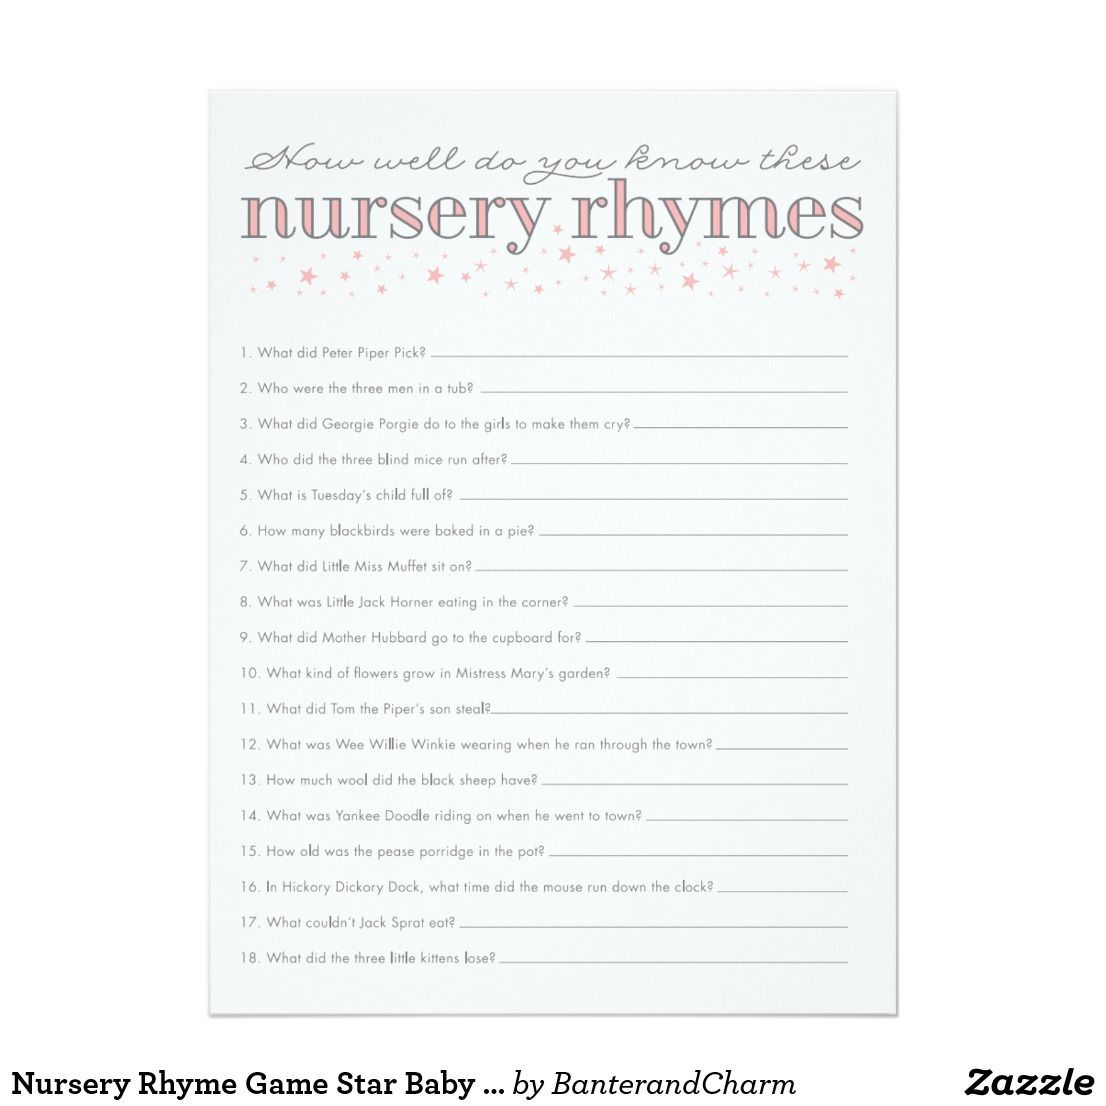 Nursery Rhyme Game Star Baby Shower Game Card Test Your Baby Shower Guestsu0027  Knowledge Of